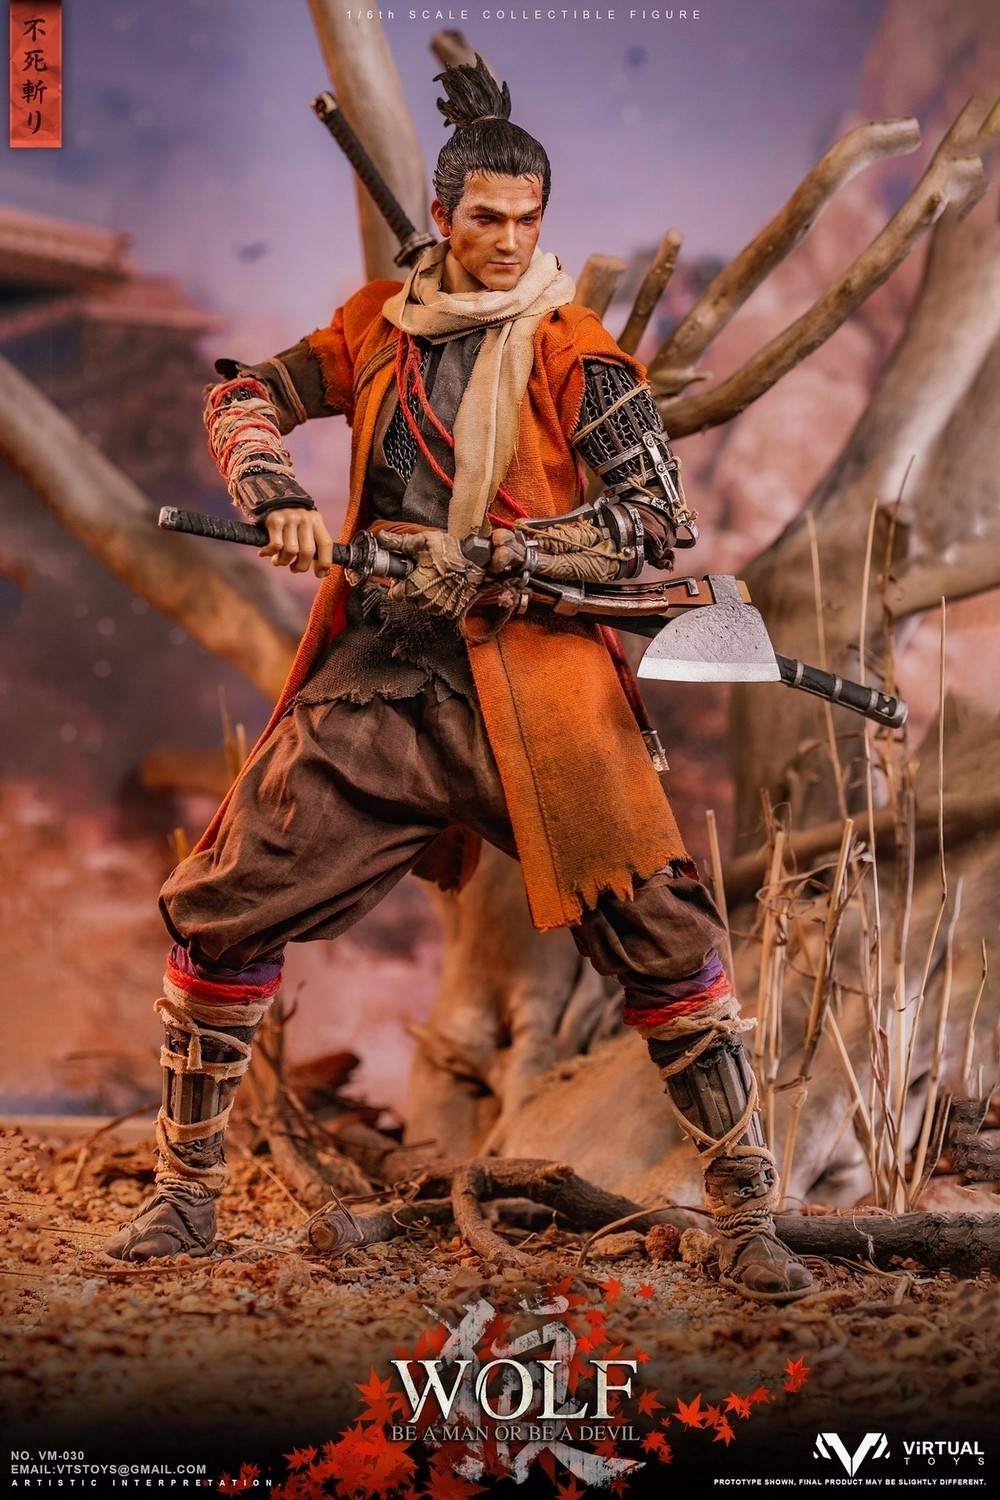 steampunk - NEW PRODUCT: VTS TOYS: 1/6 The wolf of Ashina Anonymous Wolf - Standard & Deluxe Edition VM-030DX 13461410